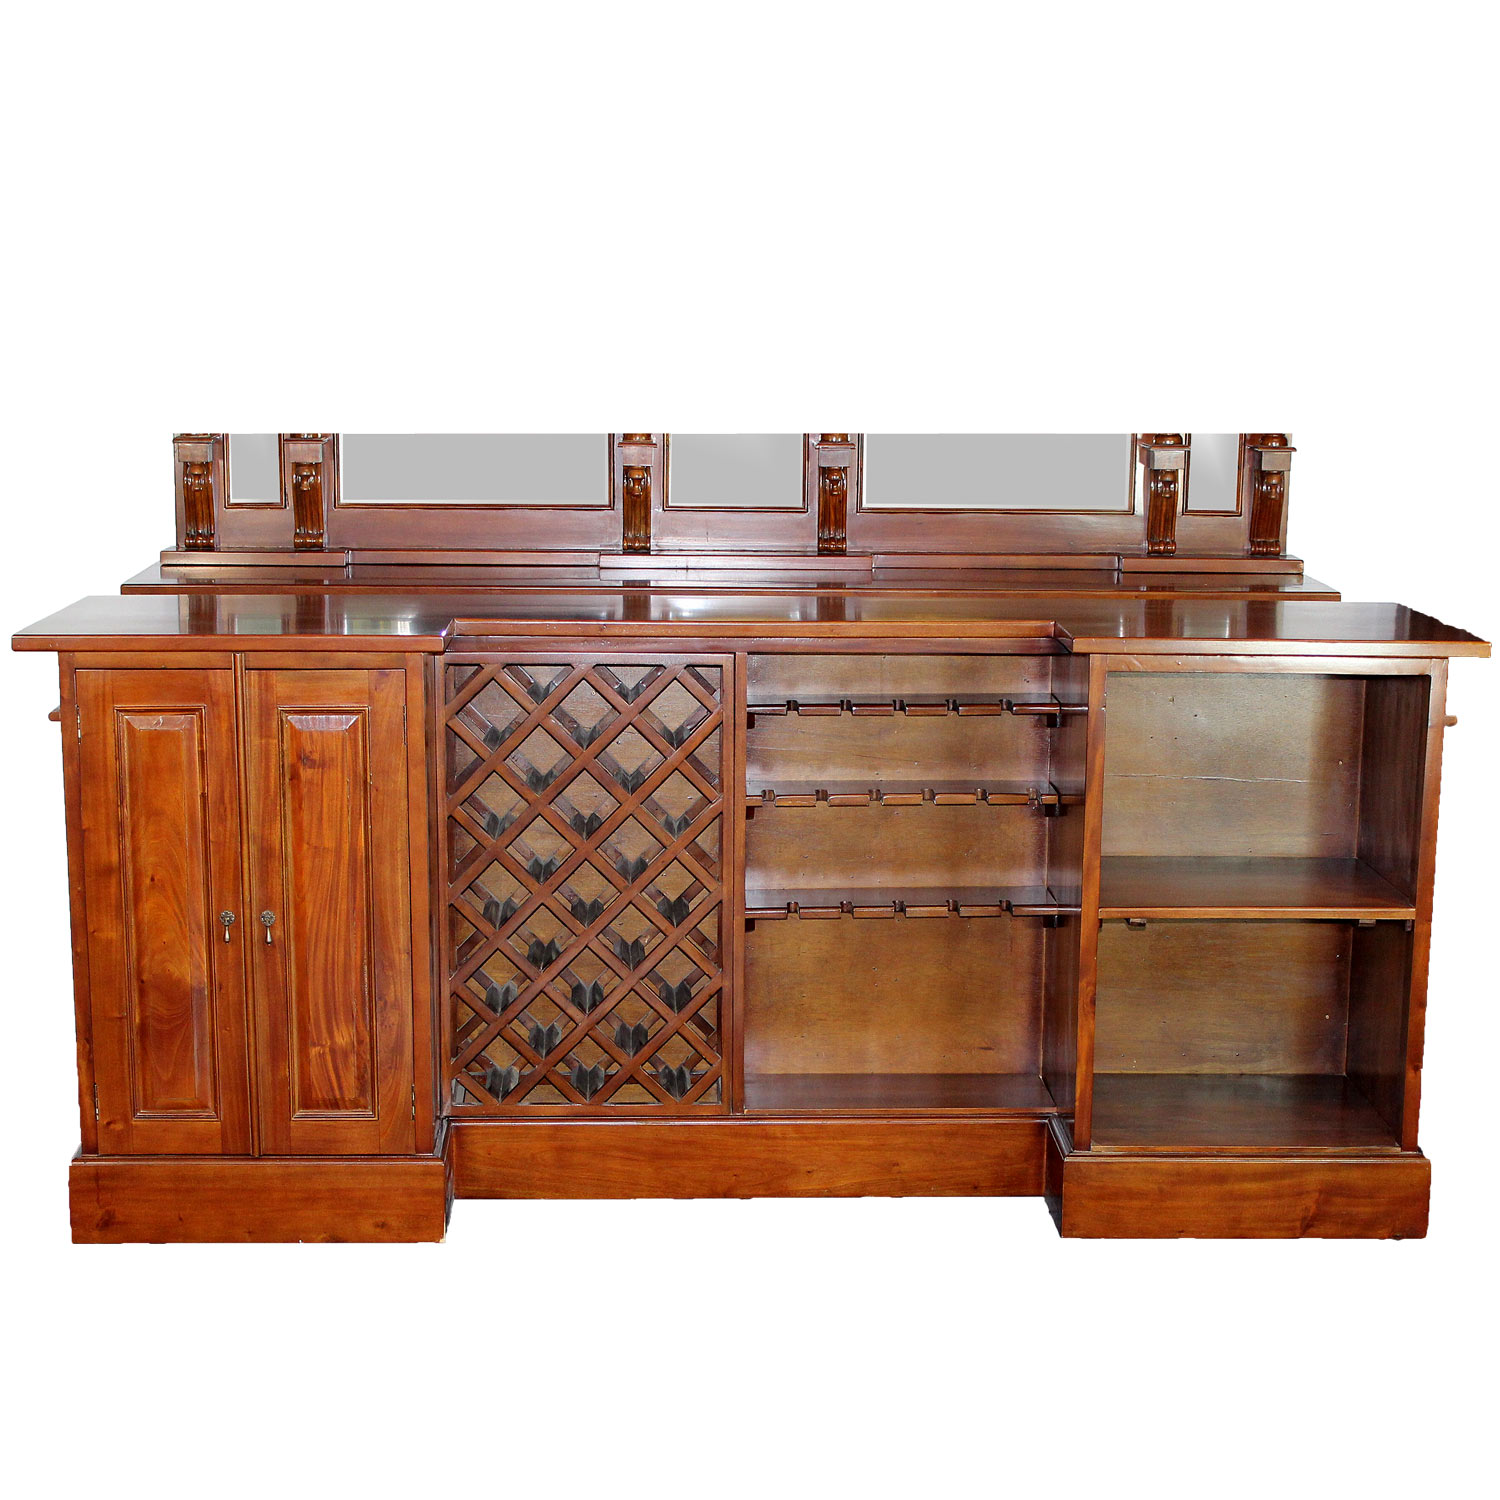 8 39 Antique Replica Mahogany Victorian Front Back Home Bar Sale Item The Kings Bay